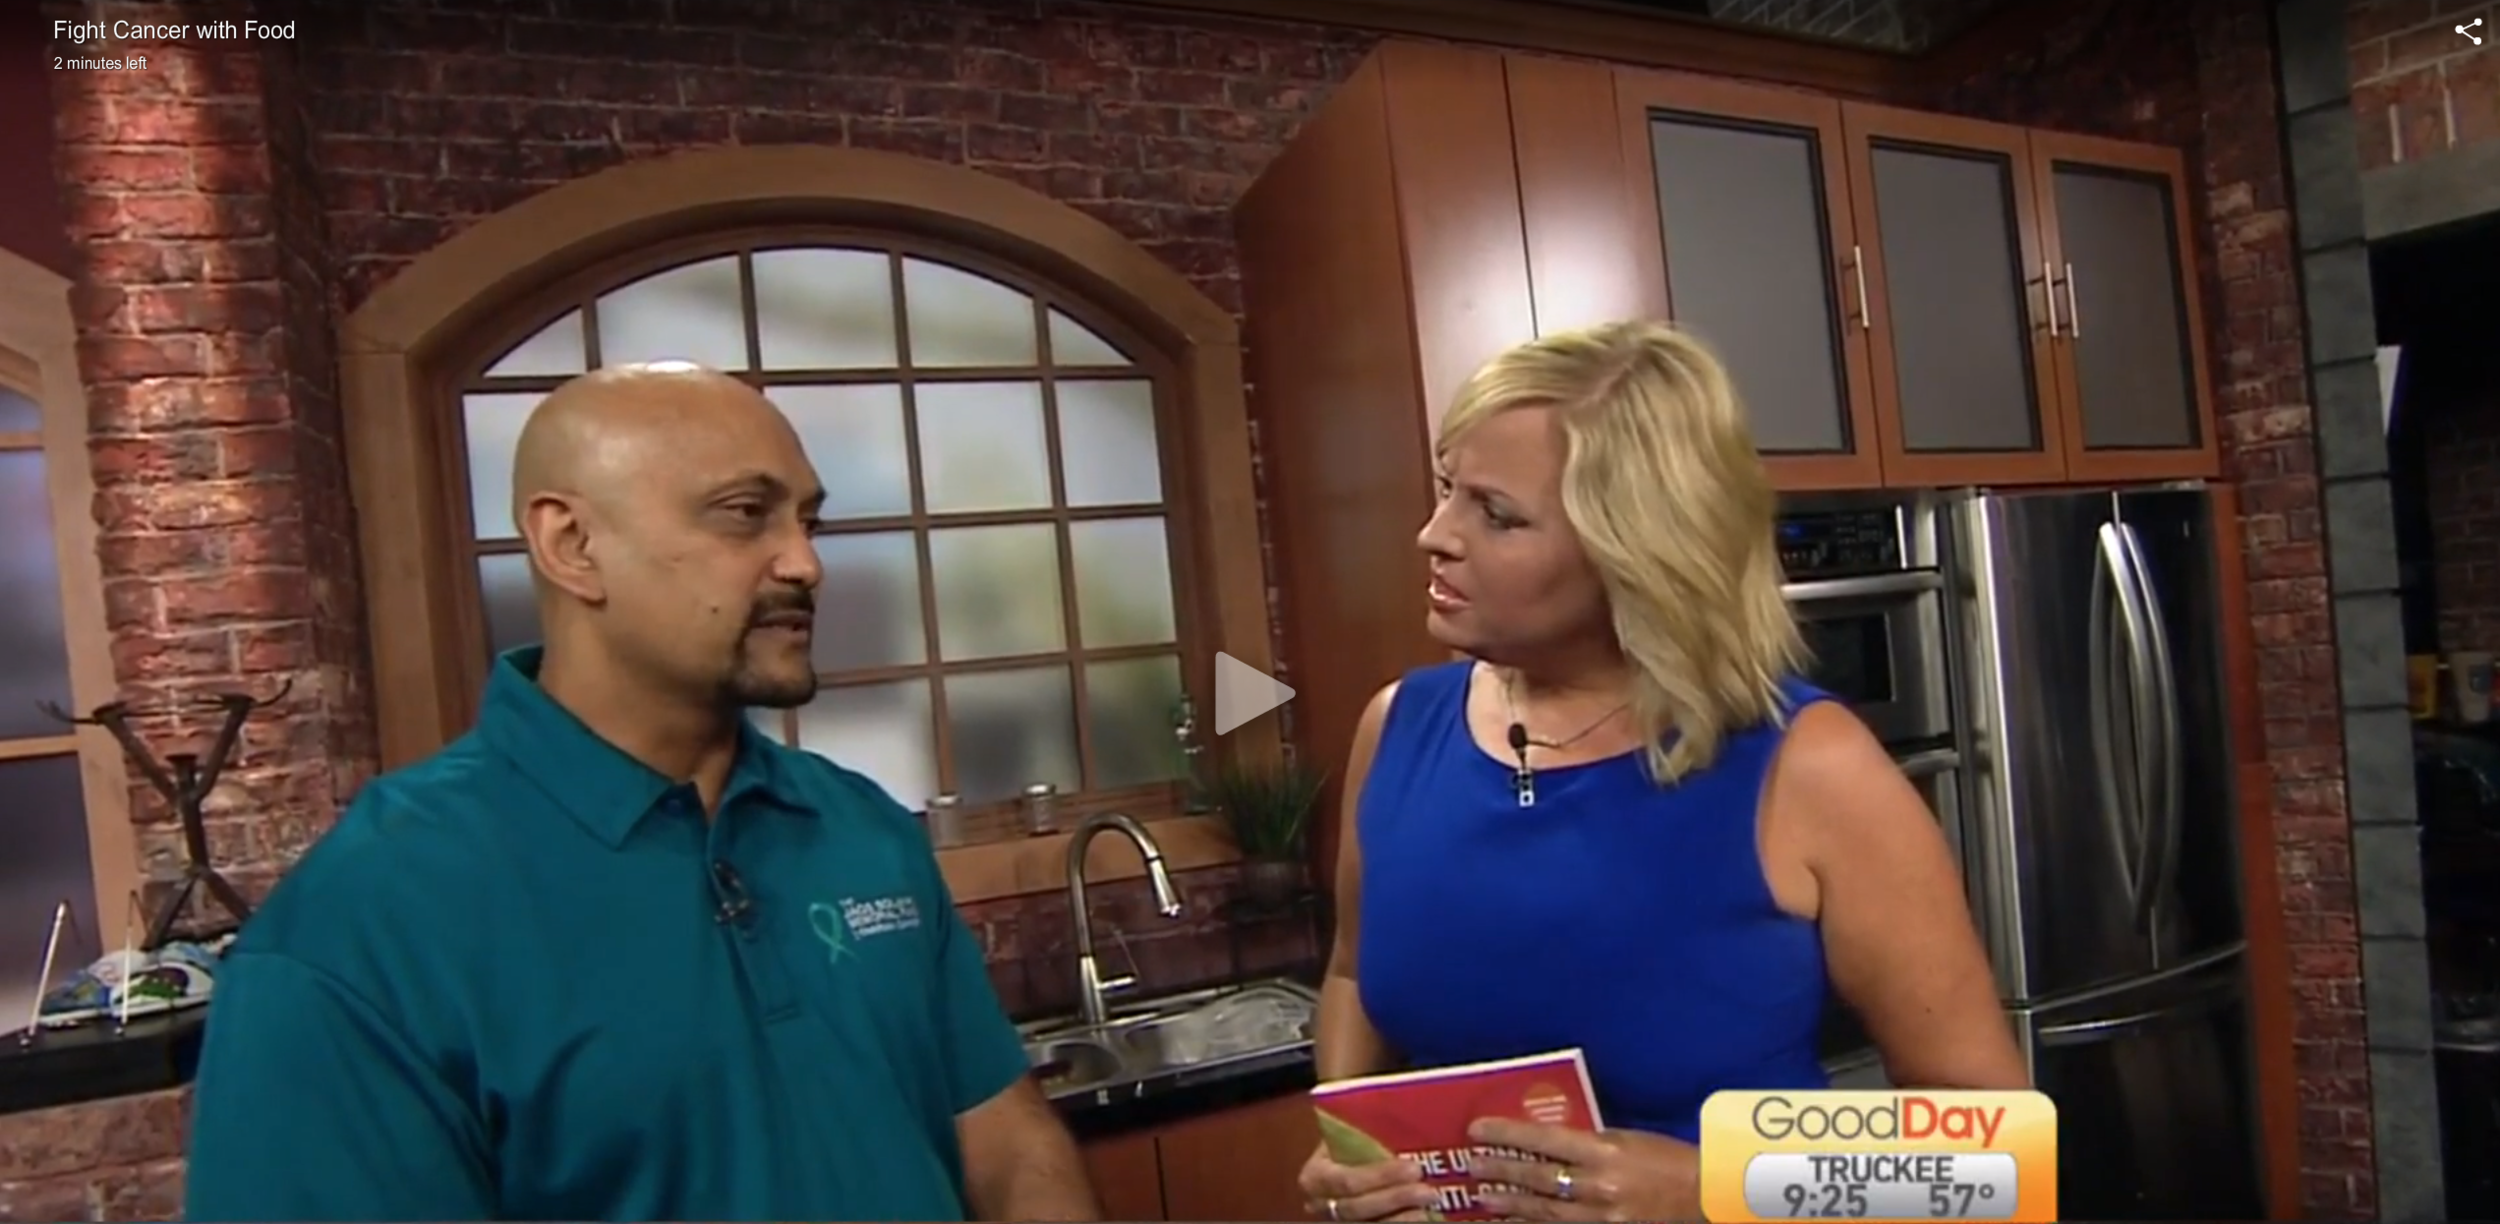 Click here to be taken to the Good Day Sacramento website and view the entire clip.